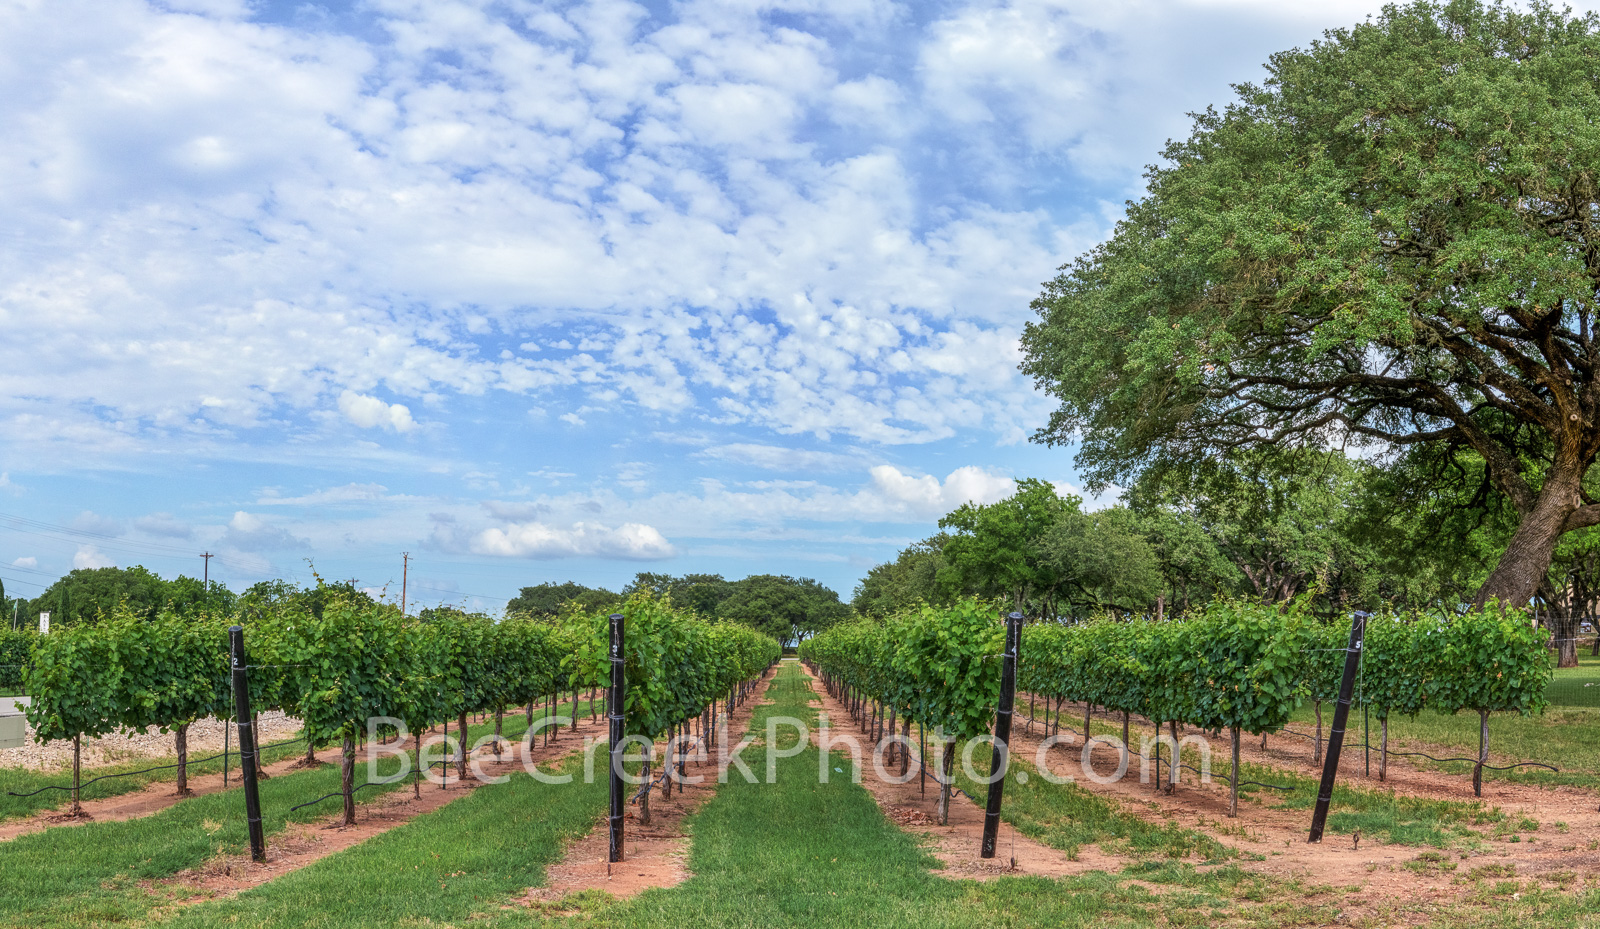 Grape vines,  texas hill country, texas, wine tasting, winerys, vines, grapes, plants, landscape, blue sky, backroads, wine, Fredricksburg, Johnson City,, photo